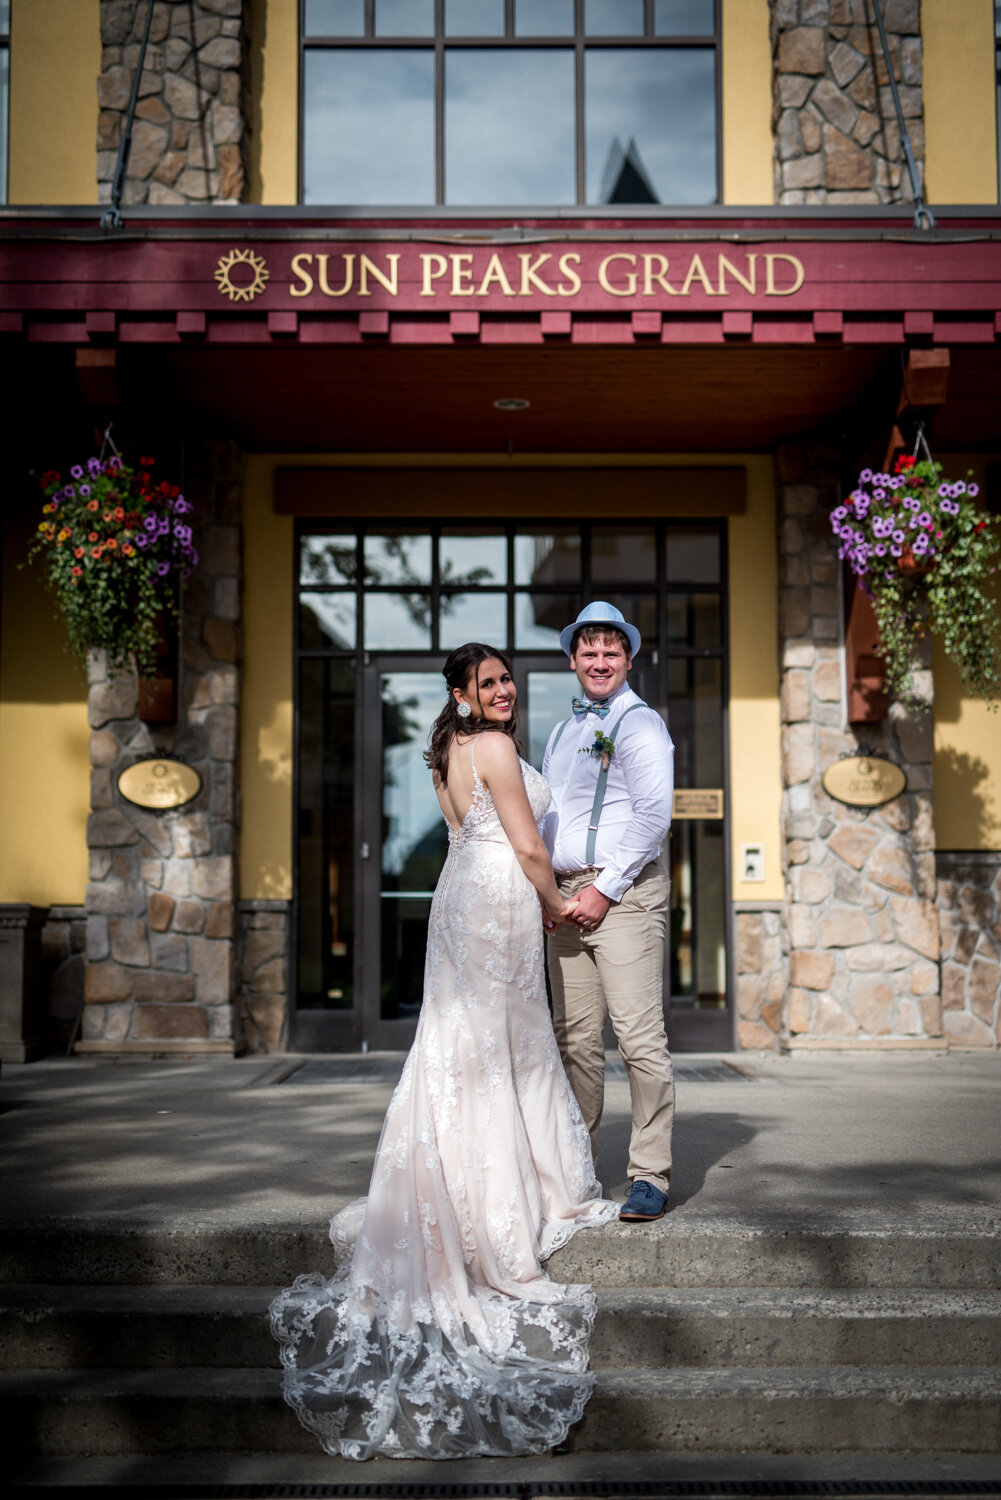 Sun Peaks-Wedding-Photography-Kamloops-347.jpg